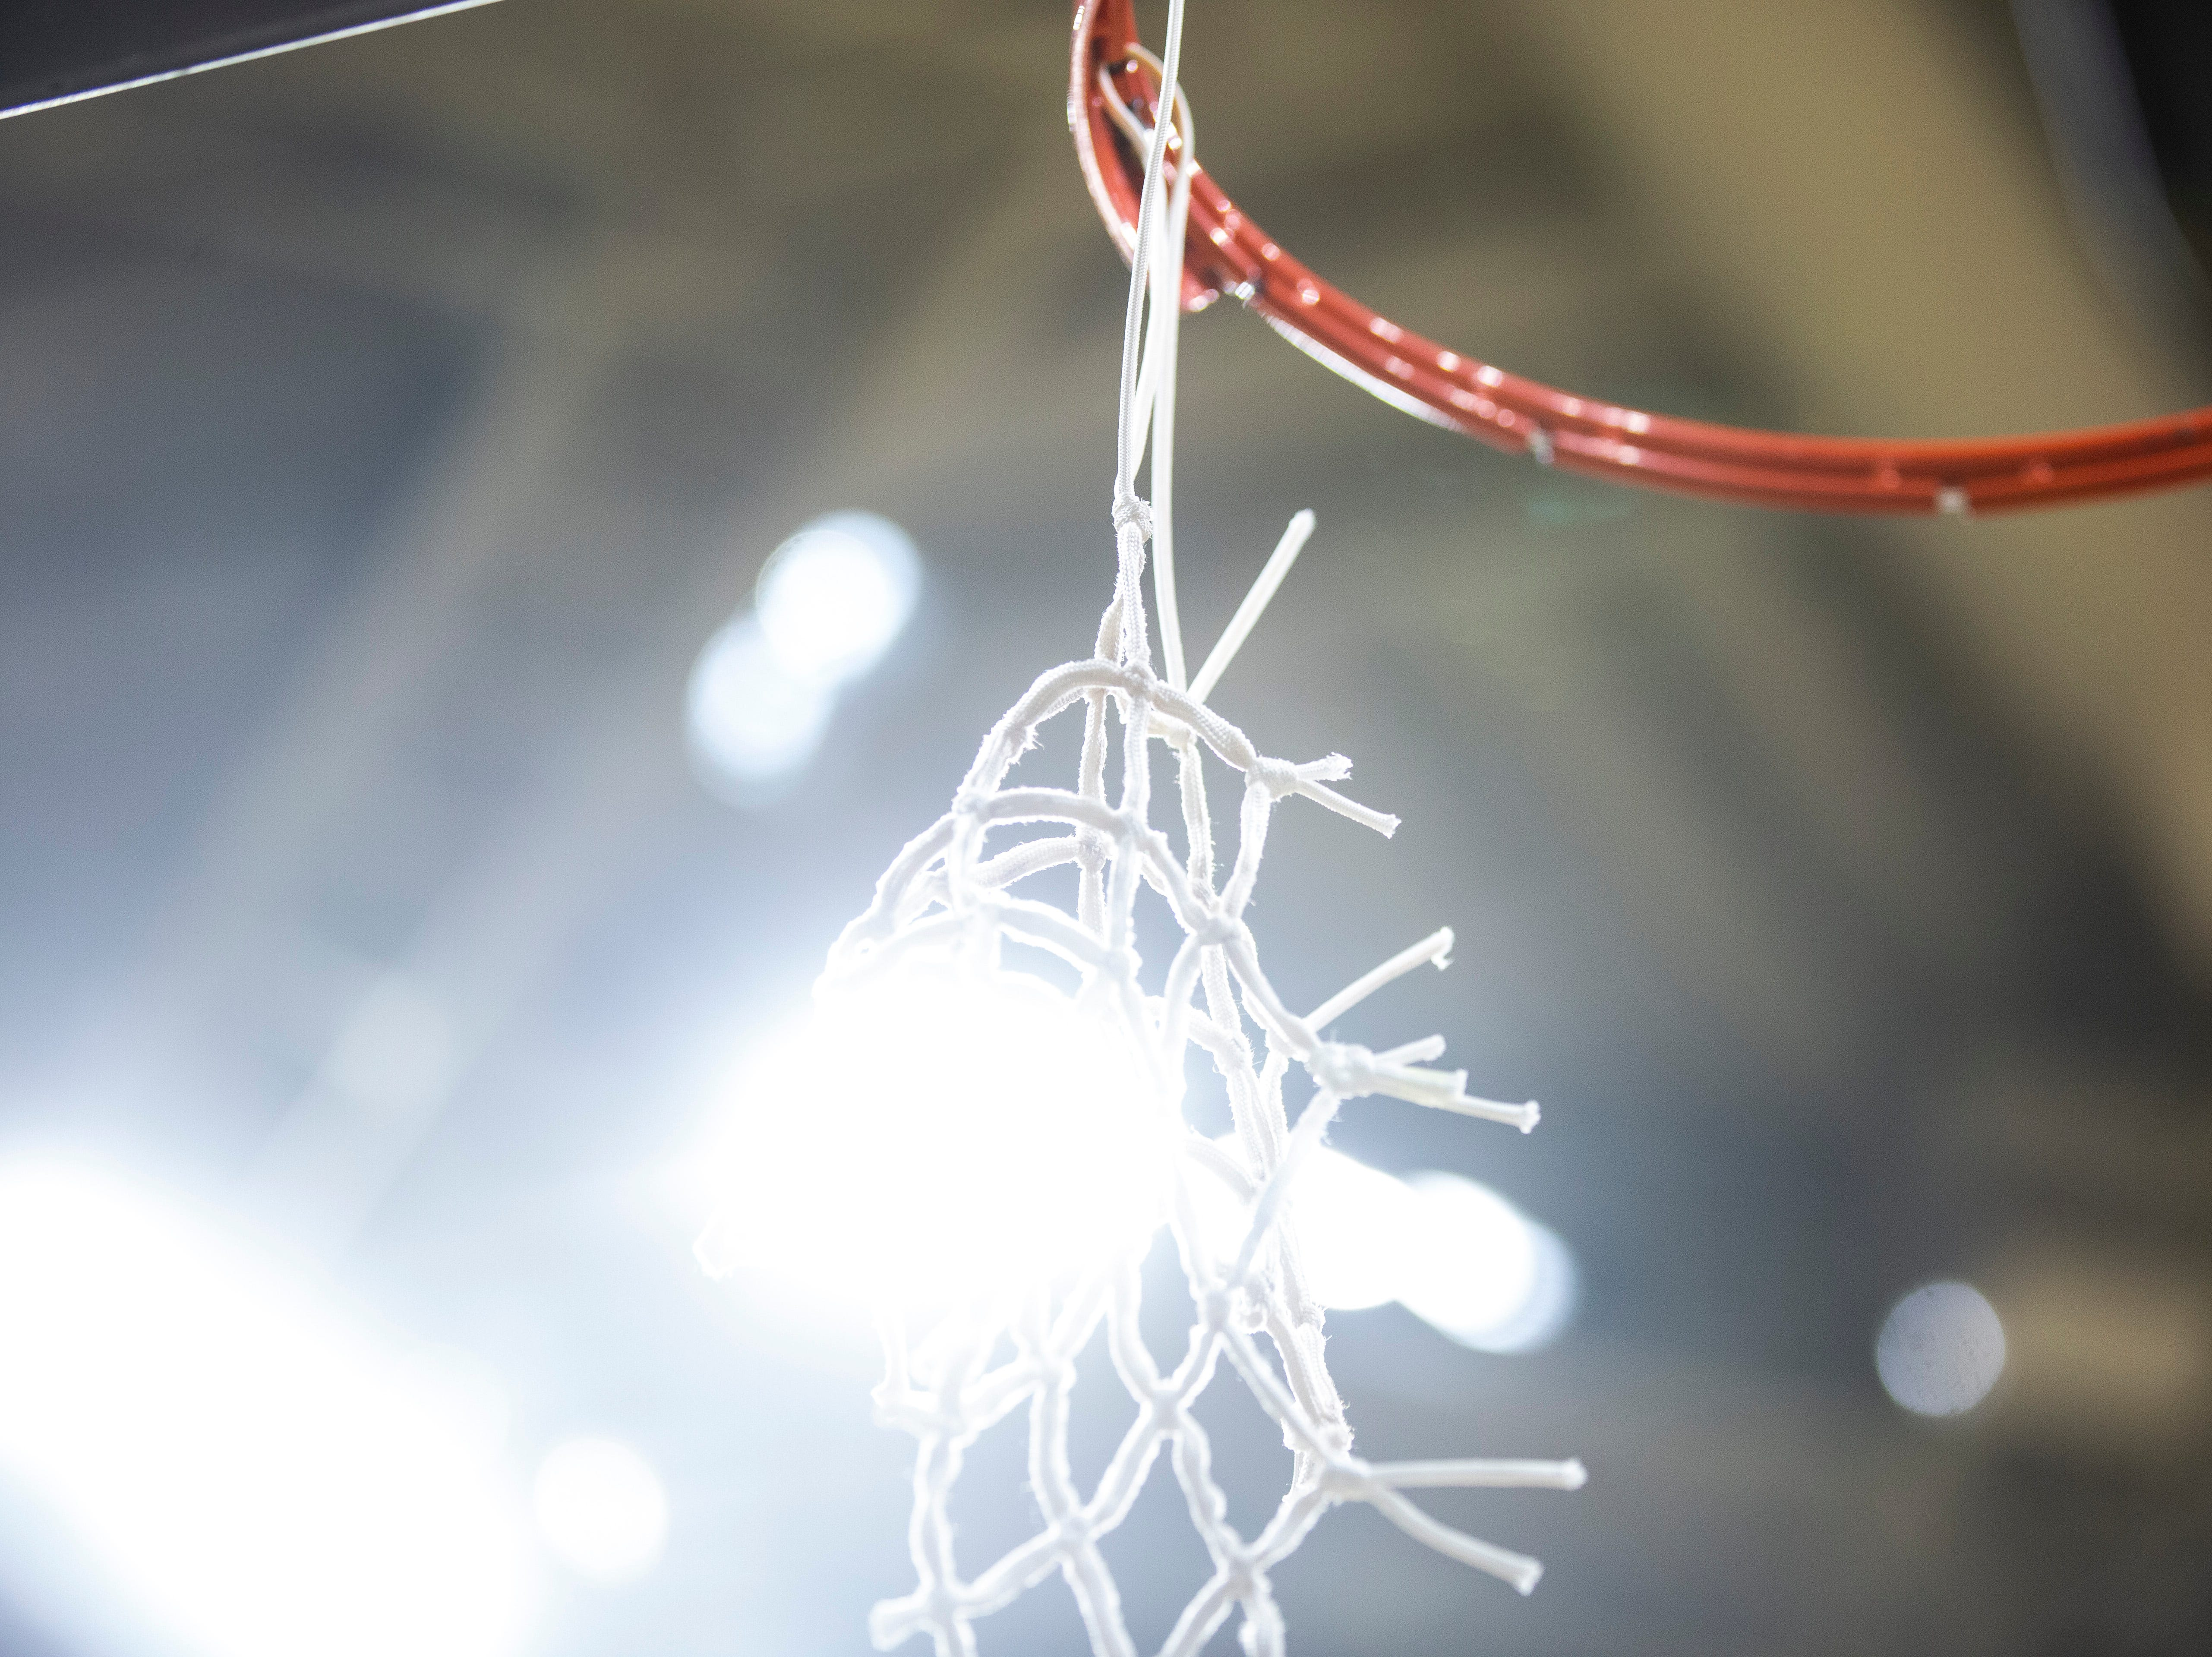 The net hangs from its rim after a NCAA women's basketball tournament second-round game, Sunday, March 24, 2019, at Carver-Hawkeye Arena in Iowa City, Iowa.